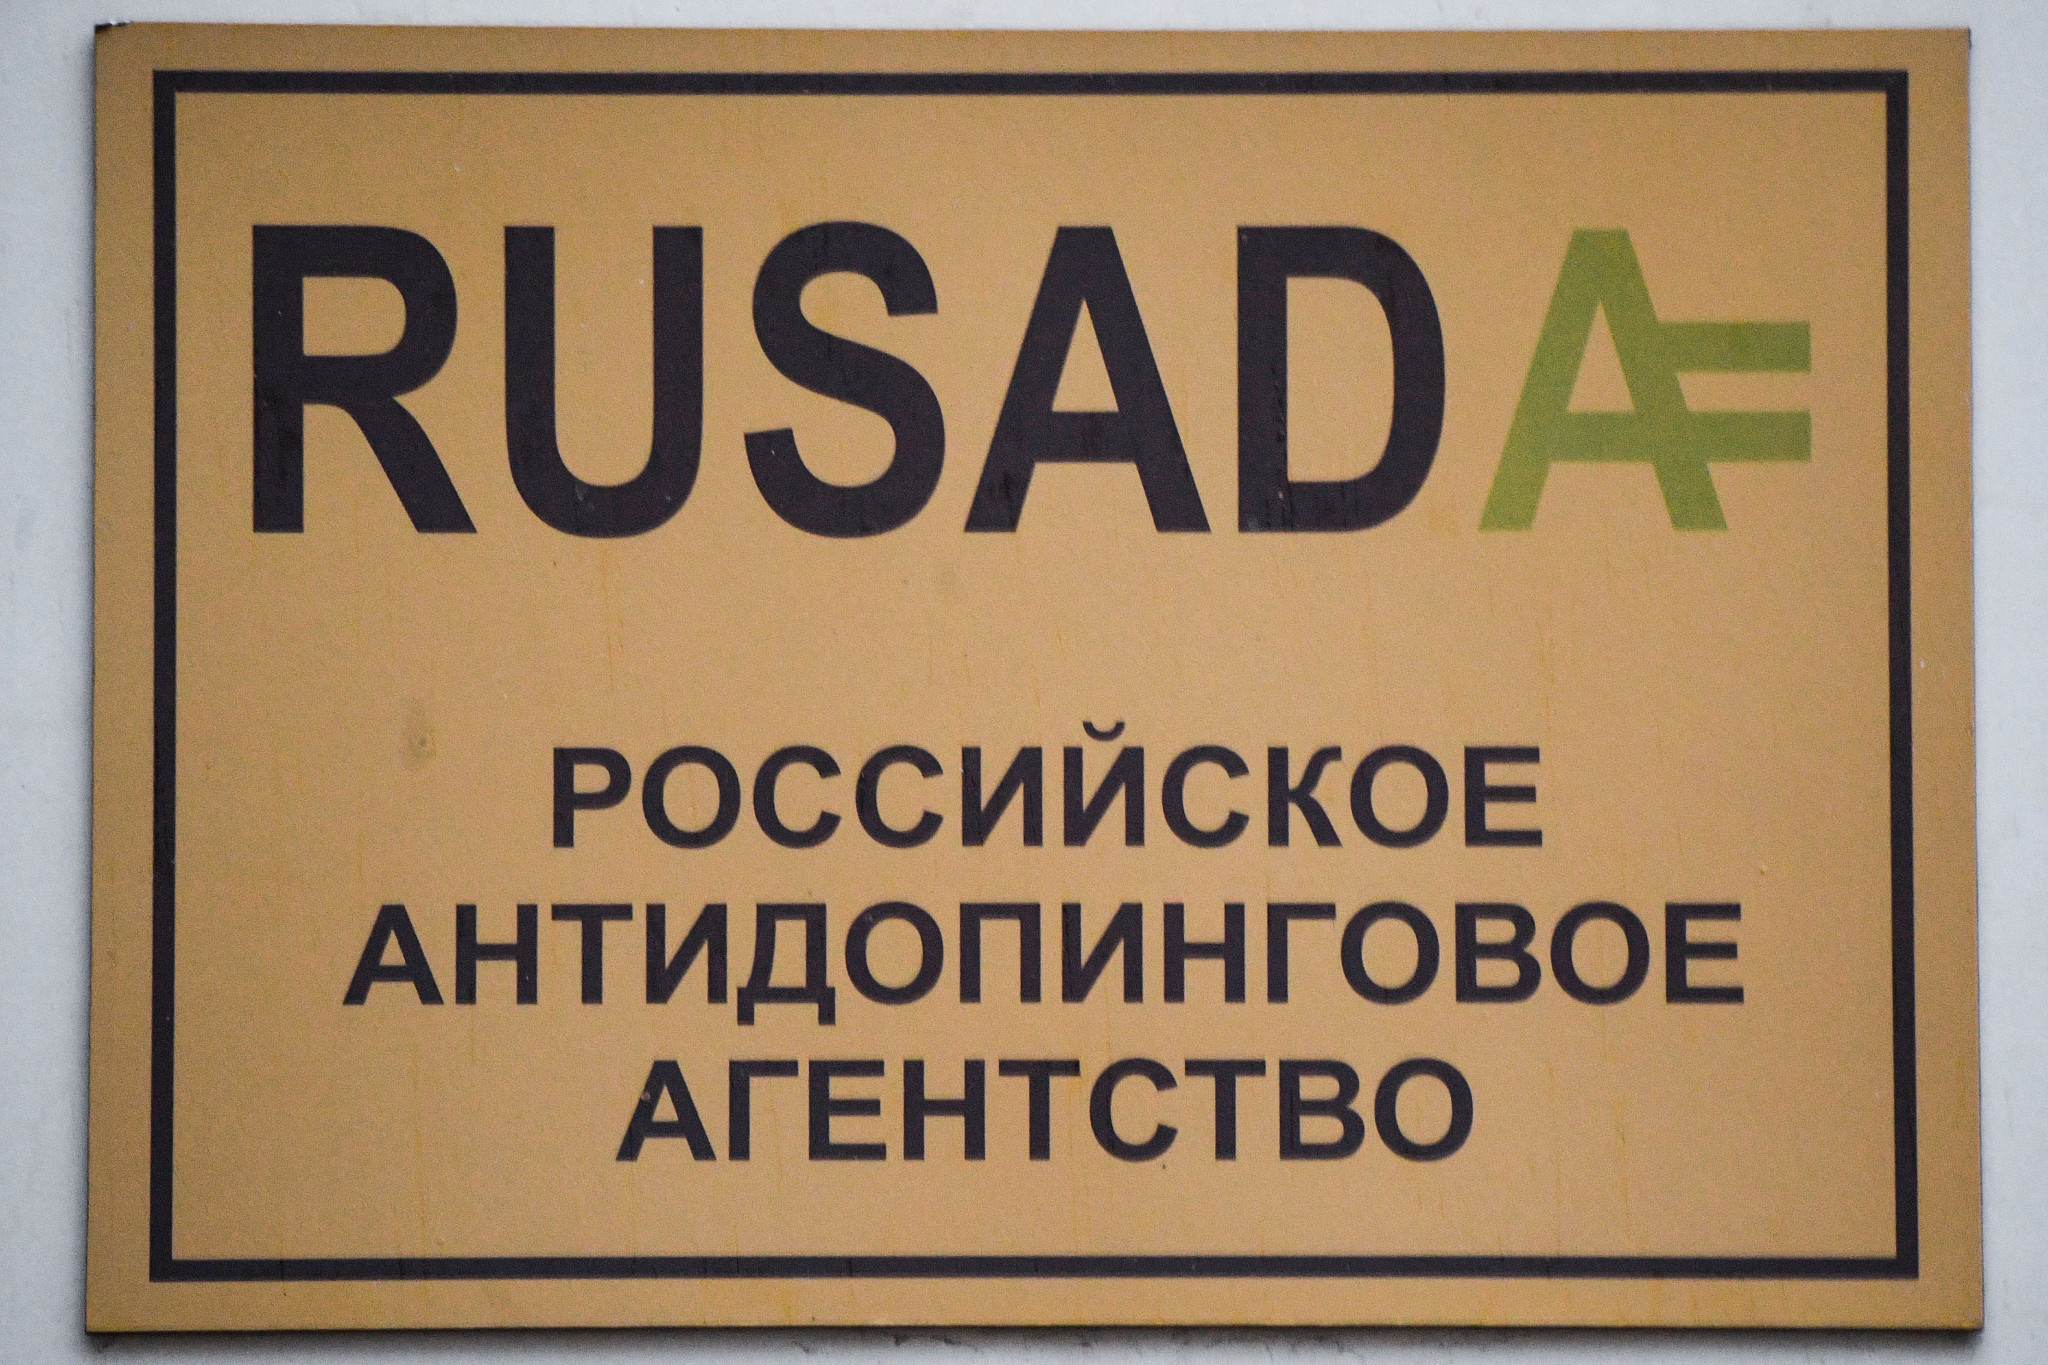 RUSADA confirms it will not appeal against two-year sanction imposed by CAS